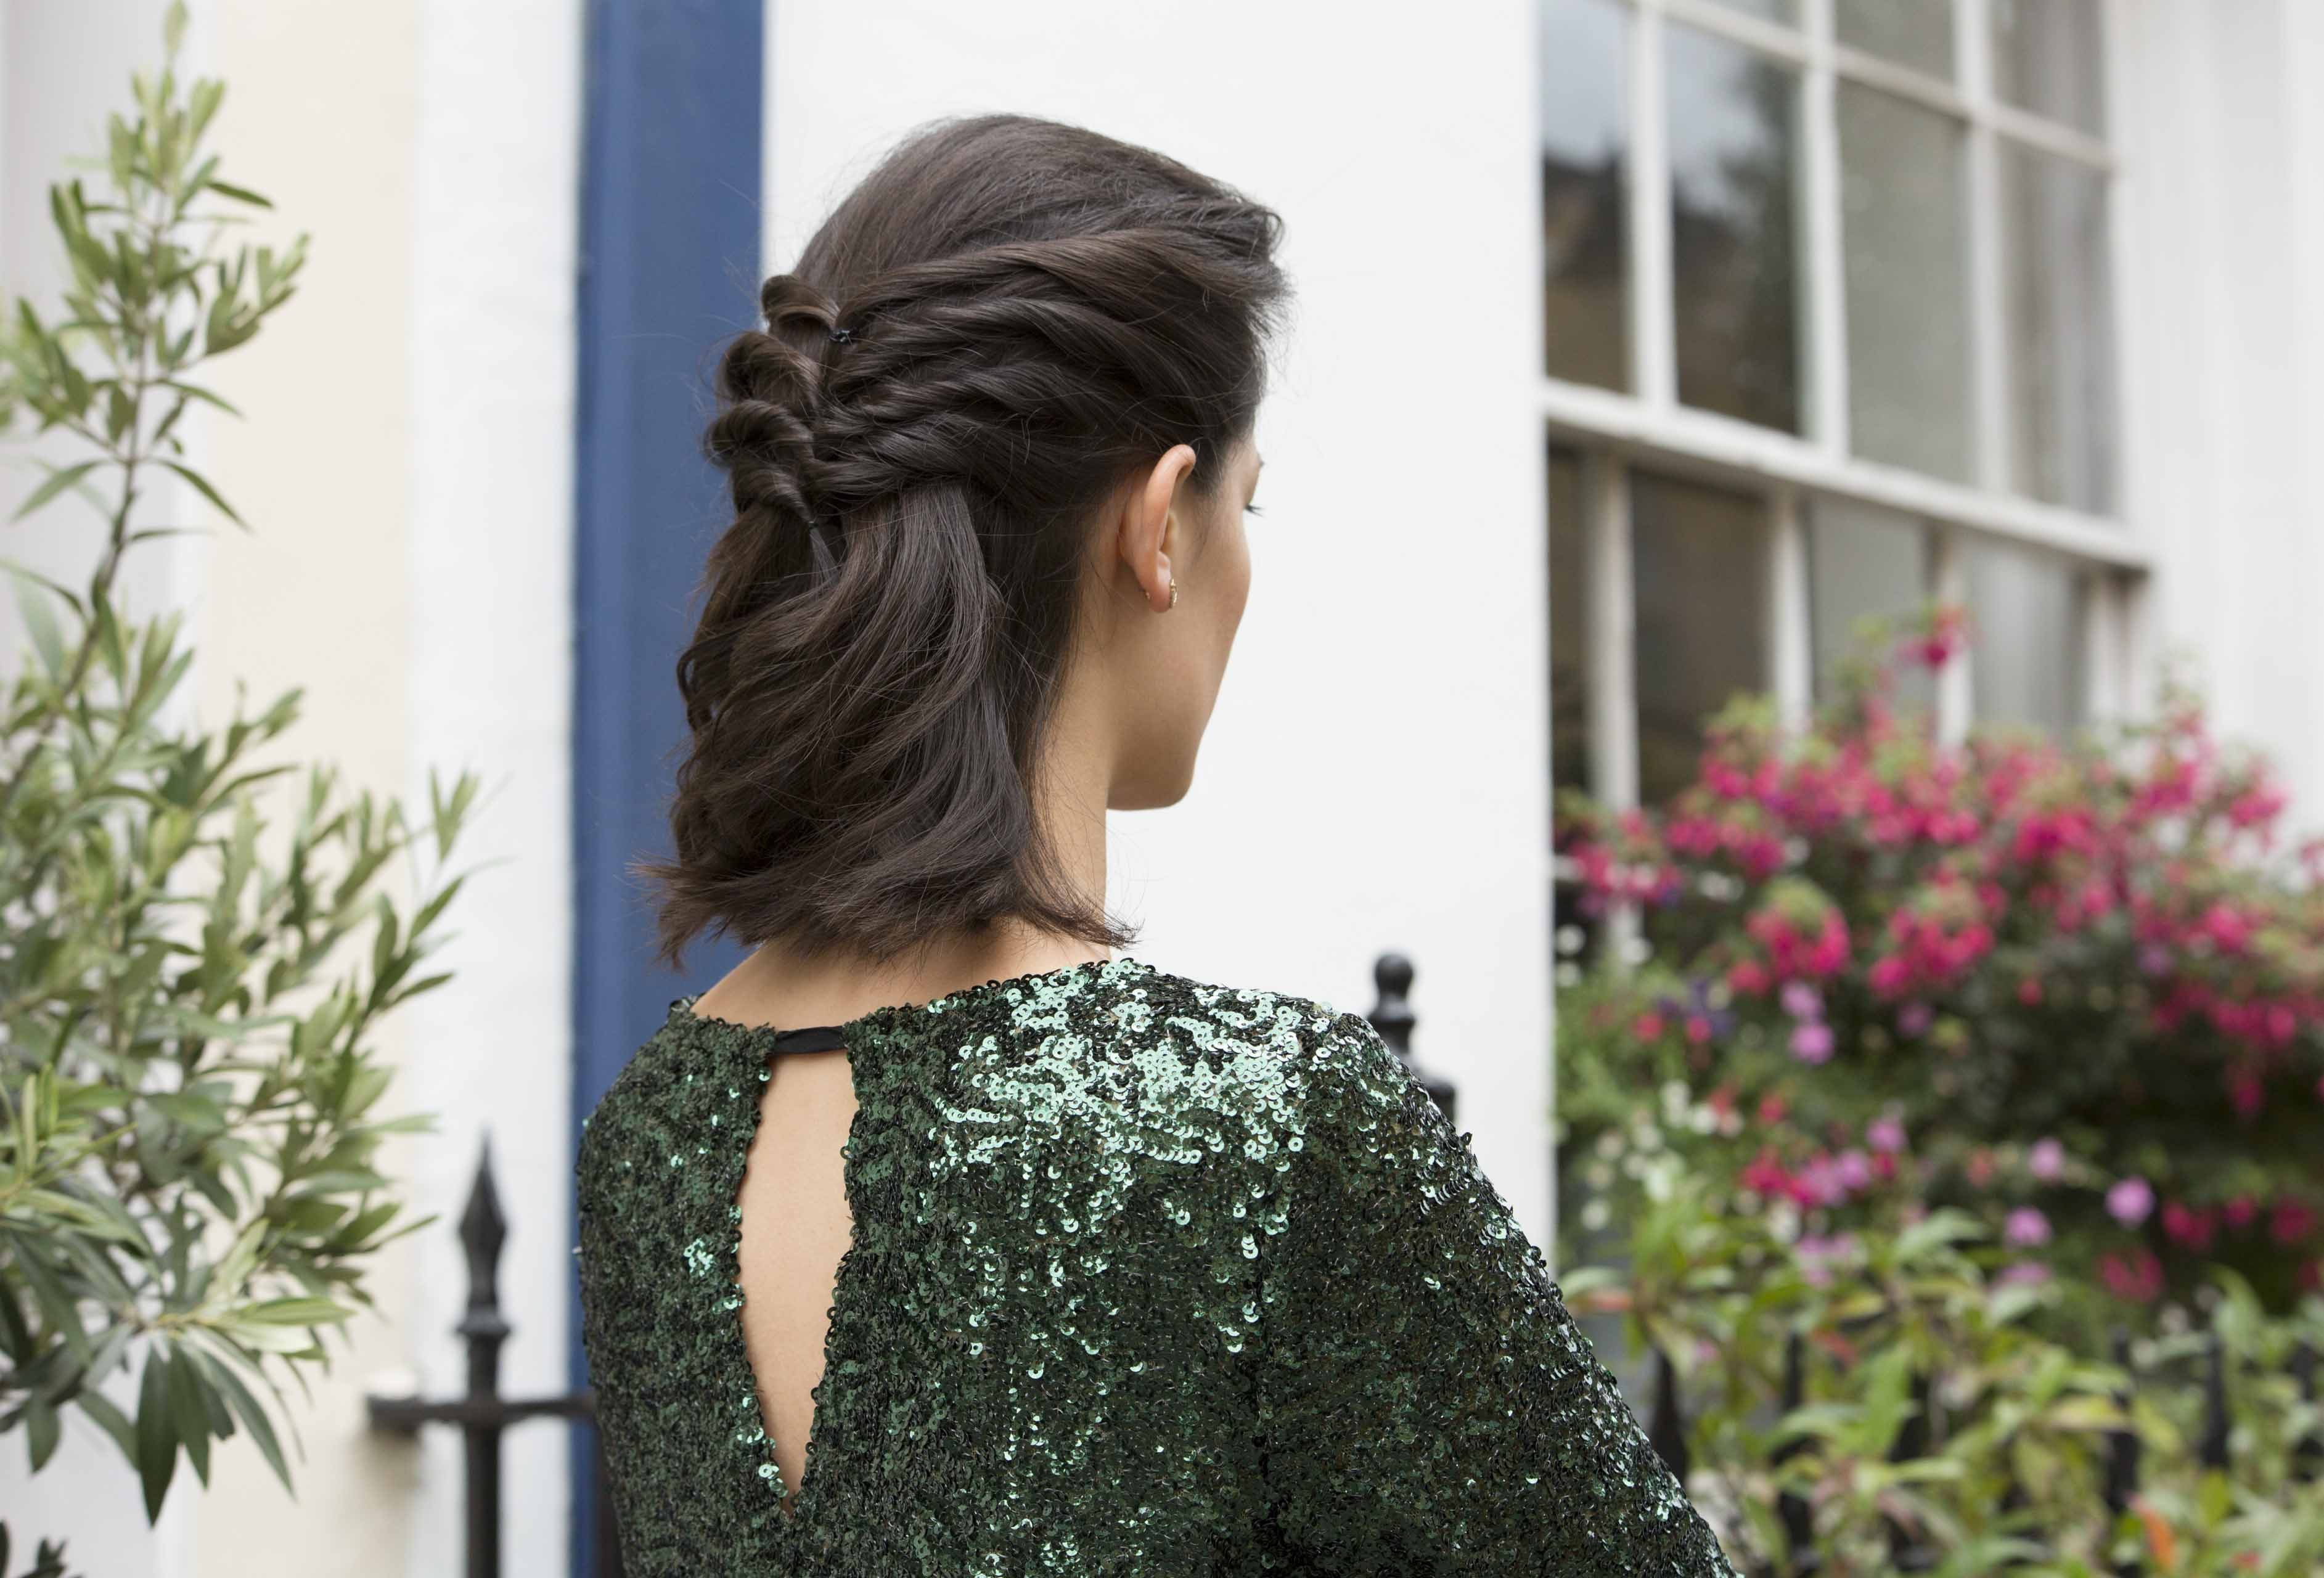 Christmas party hairstyles for short hair: All Things Hair - IMAGE - brown hair twsted ponytail